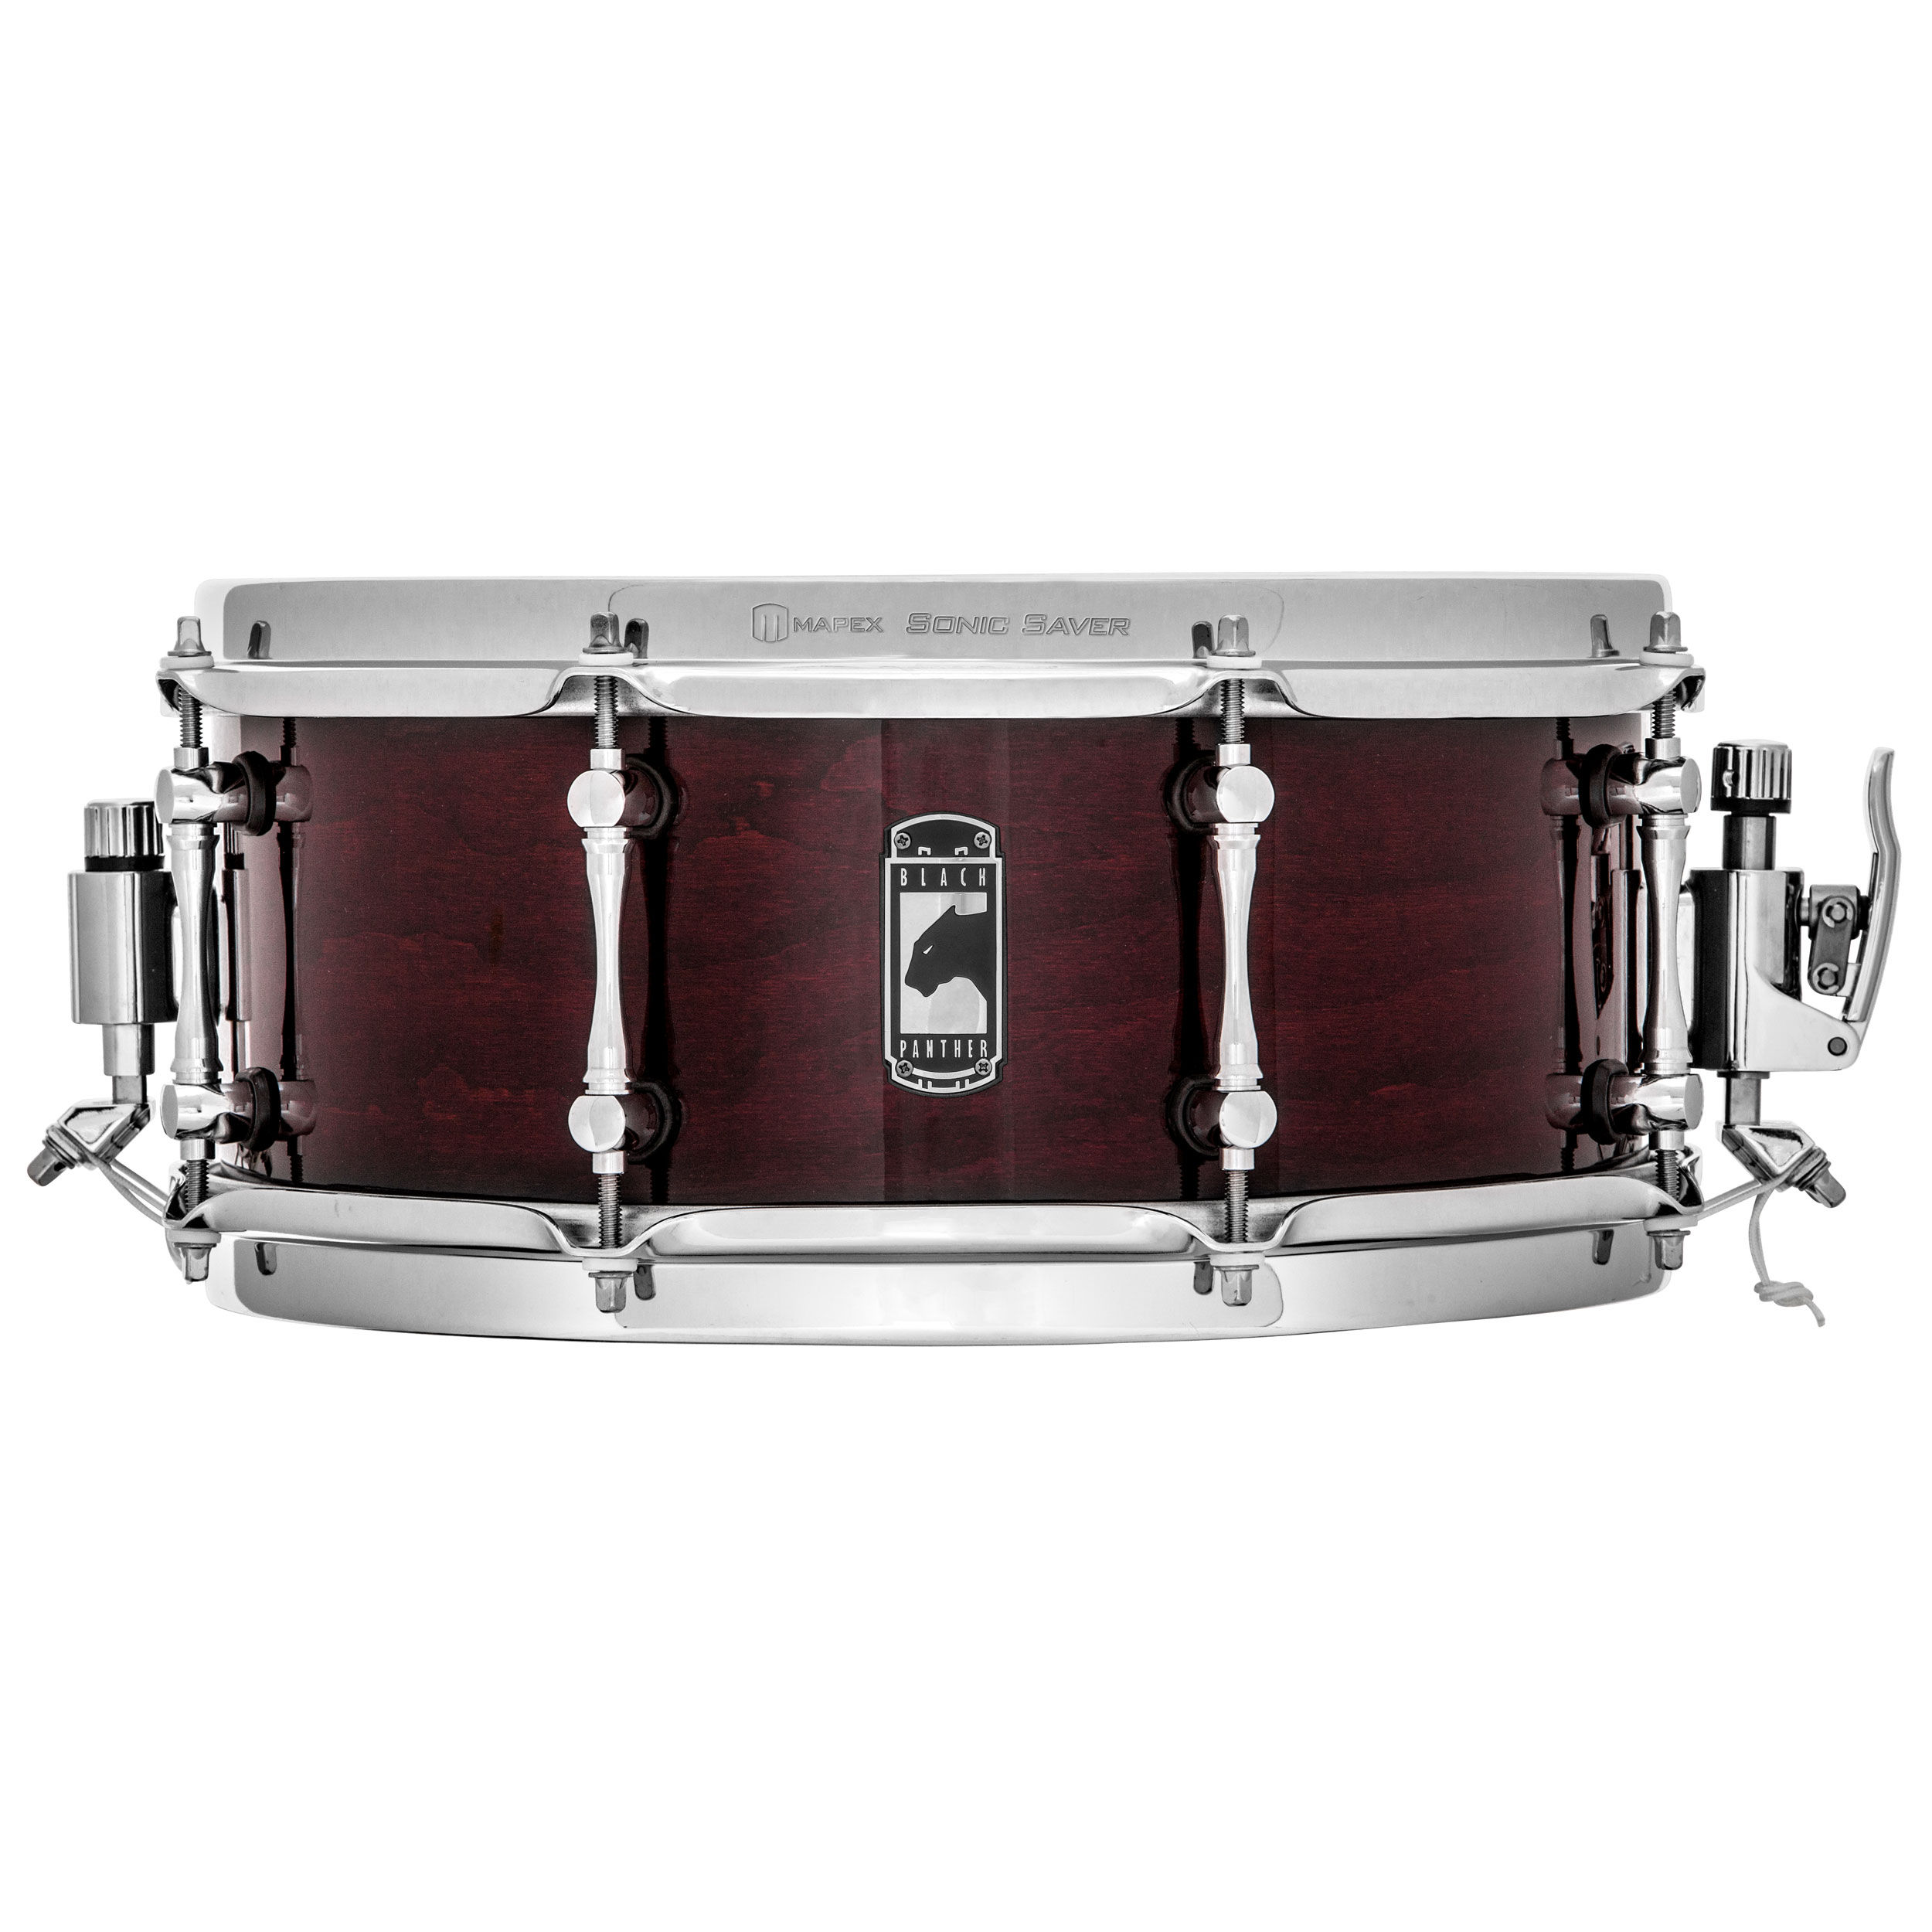 "Mapex 13"" x 5.5"" Black Panther Cherry Bomb Snare Drum"